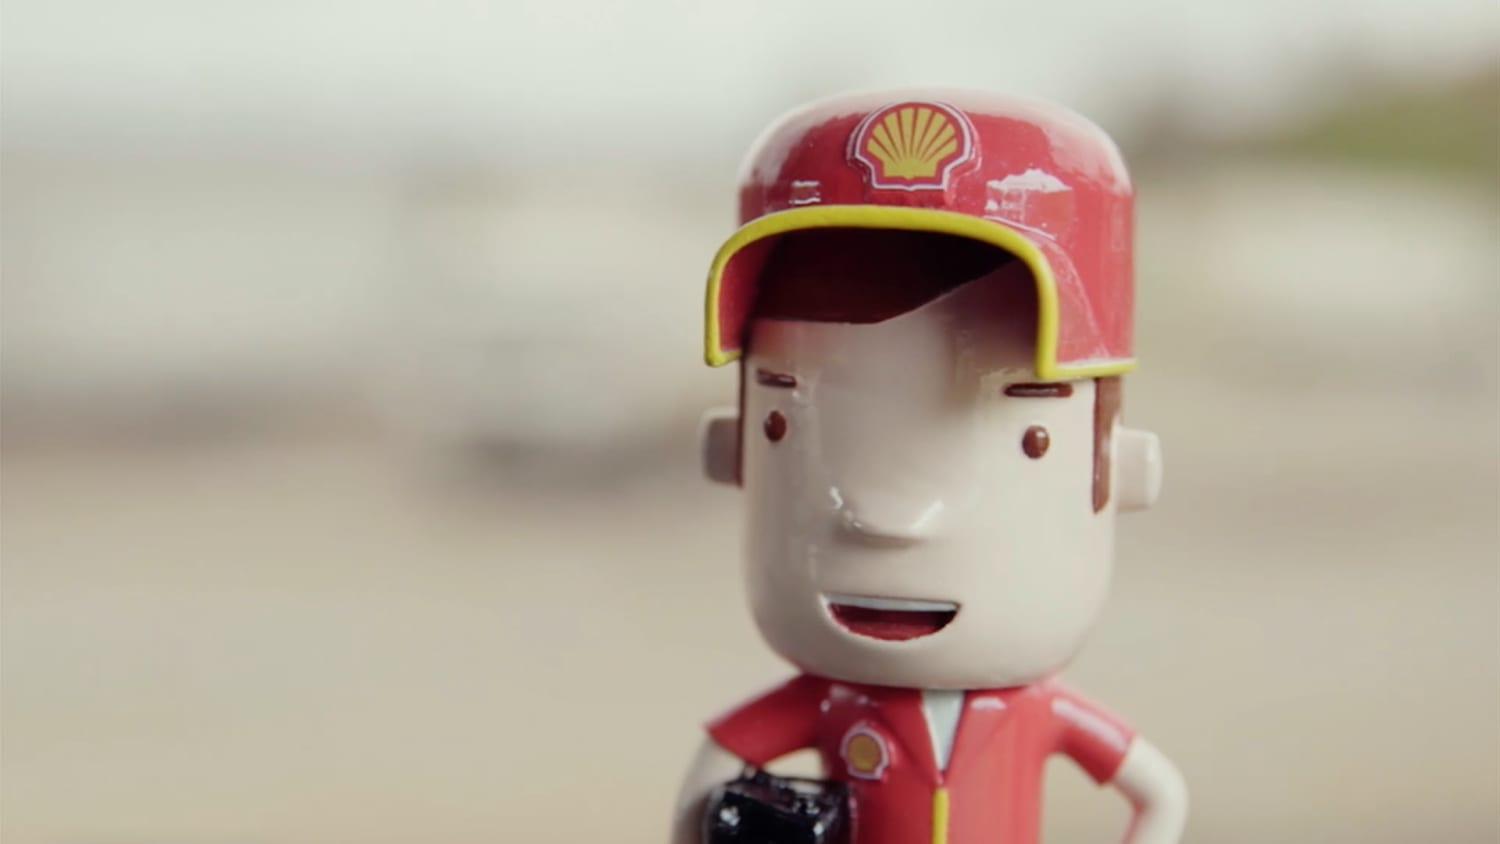 Wunderman Thompson Sao Paulo WORK eddiehighay shell media 1